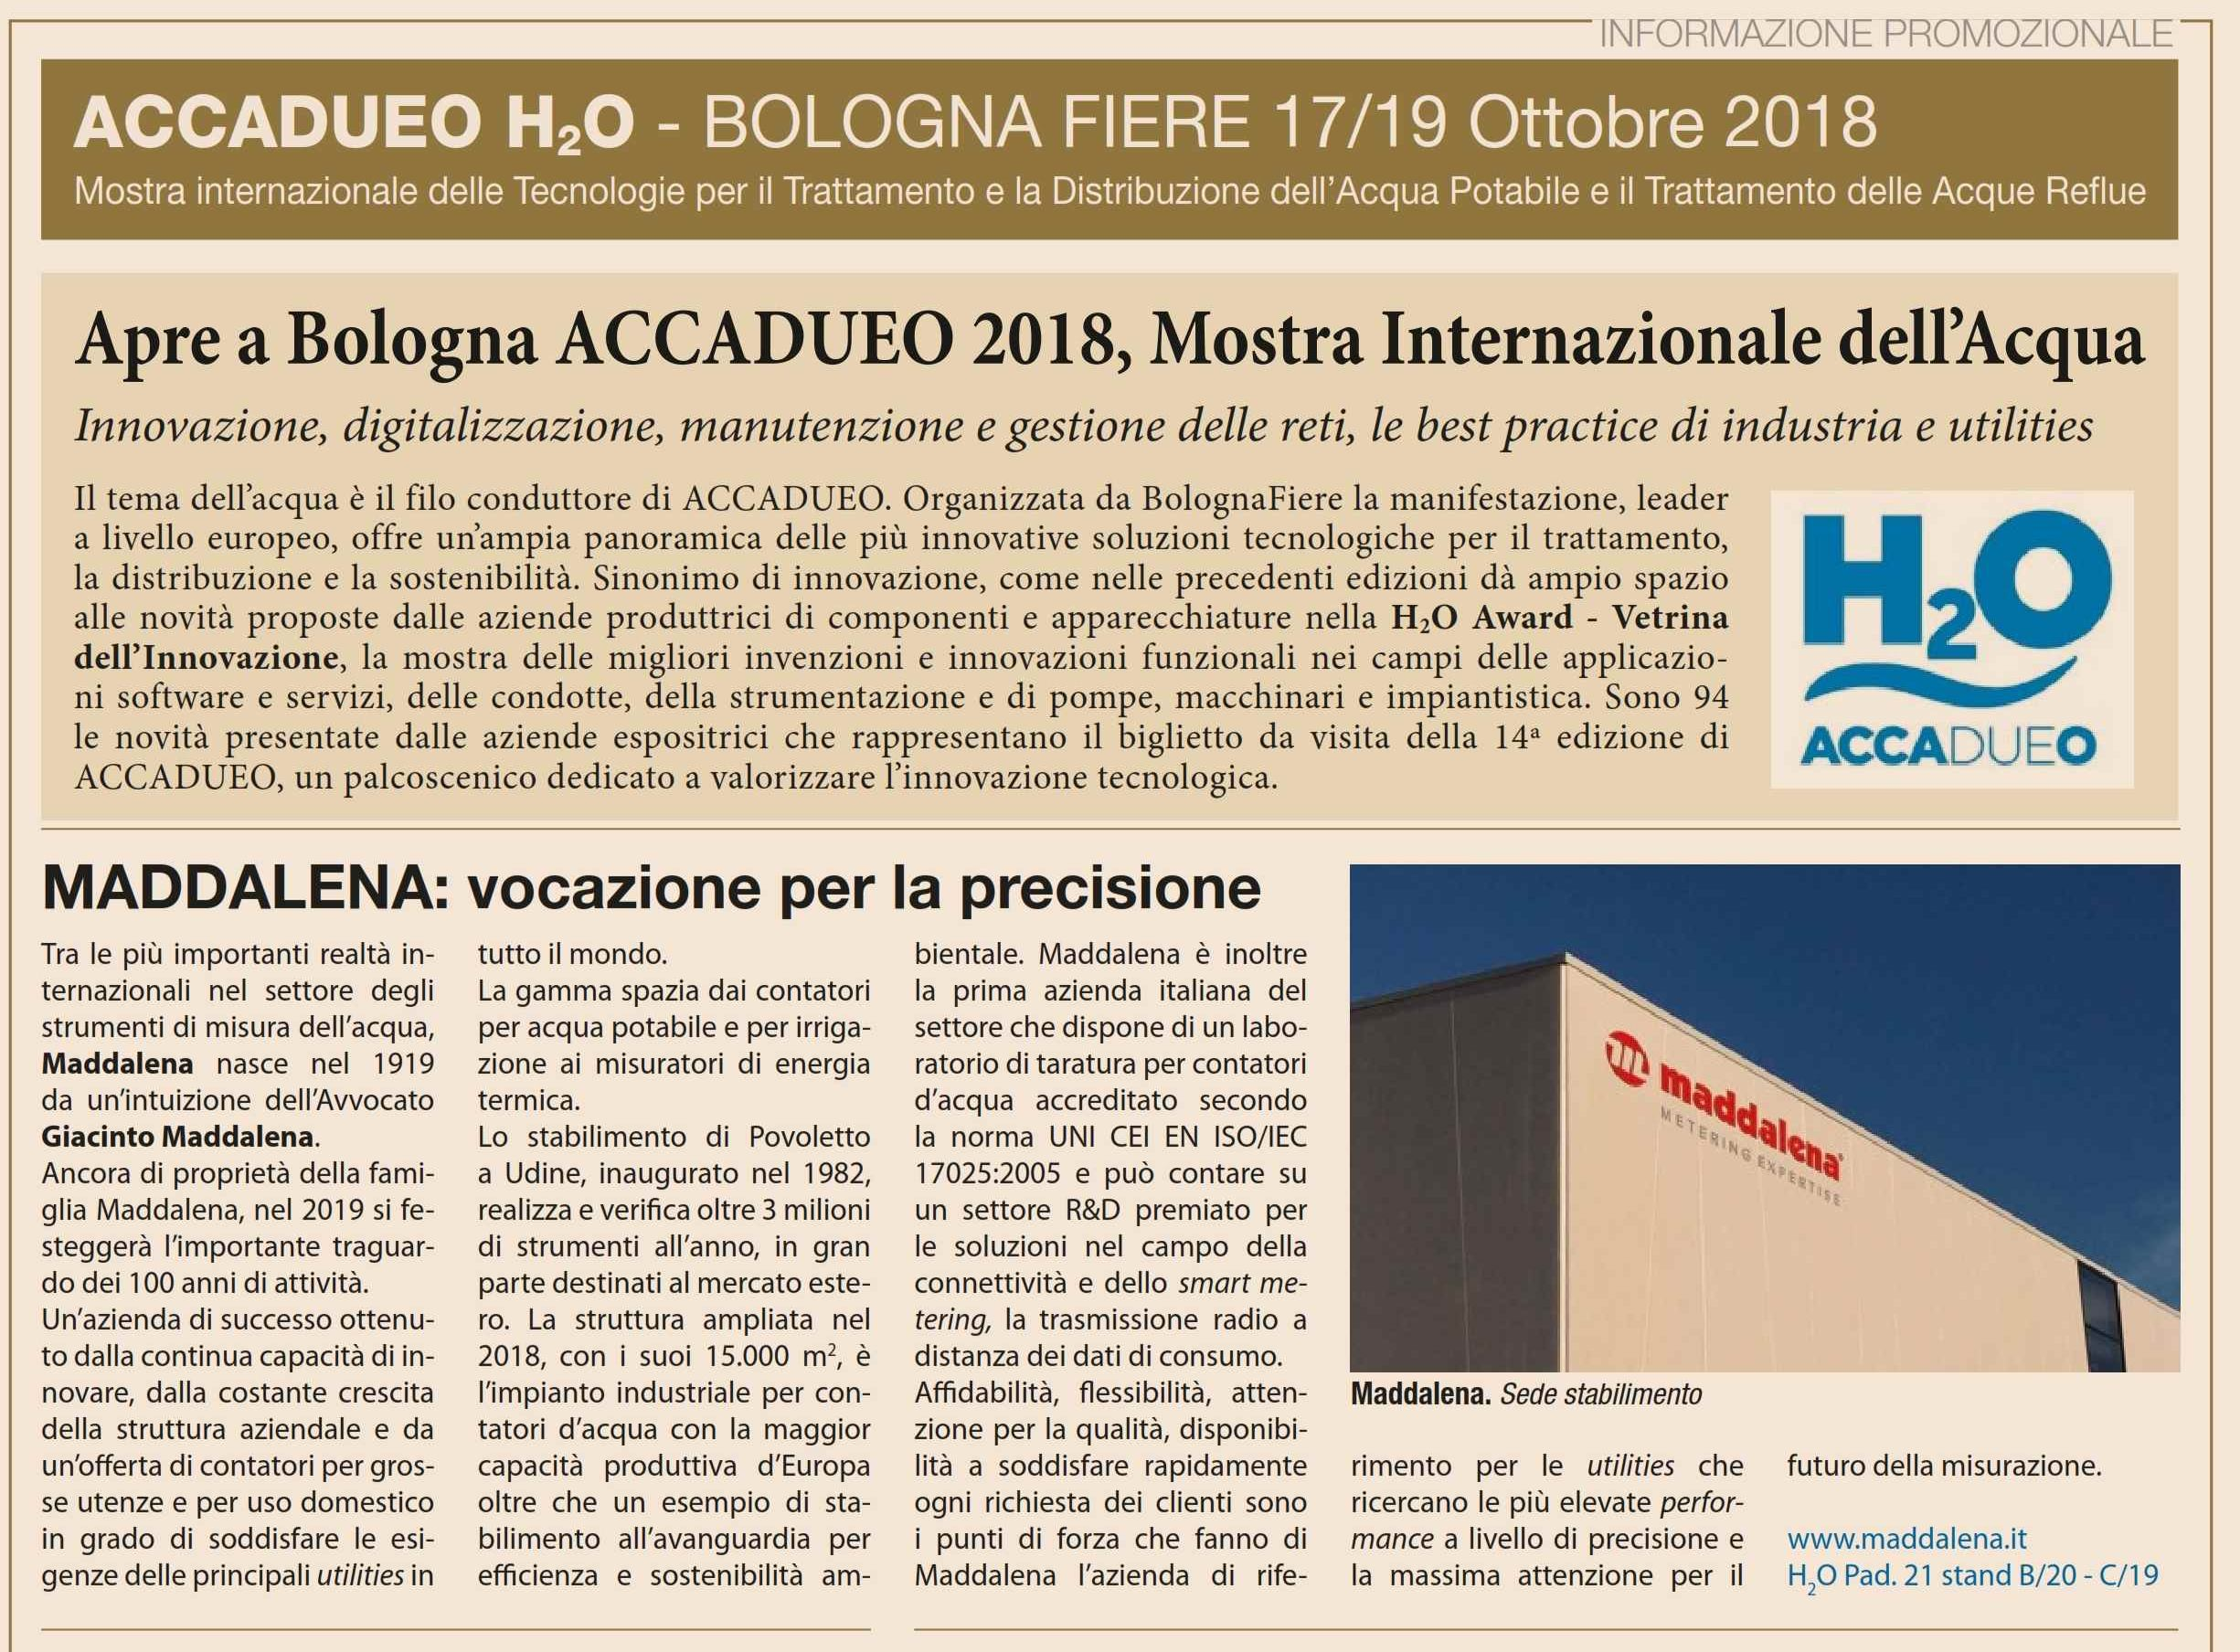 press-article-maddalena-vocation-for-precision